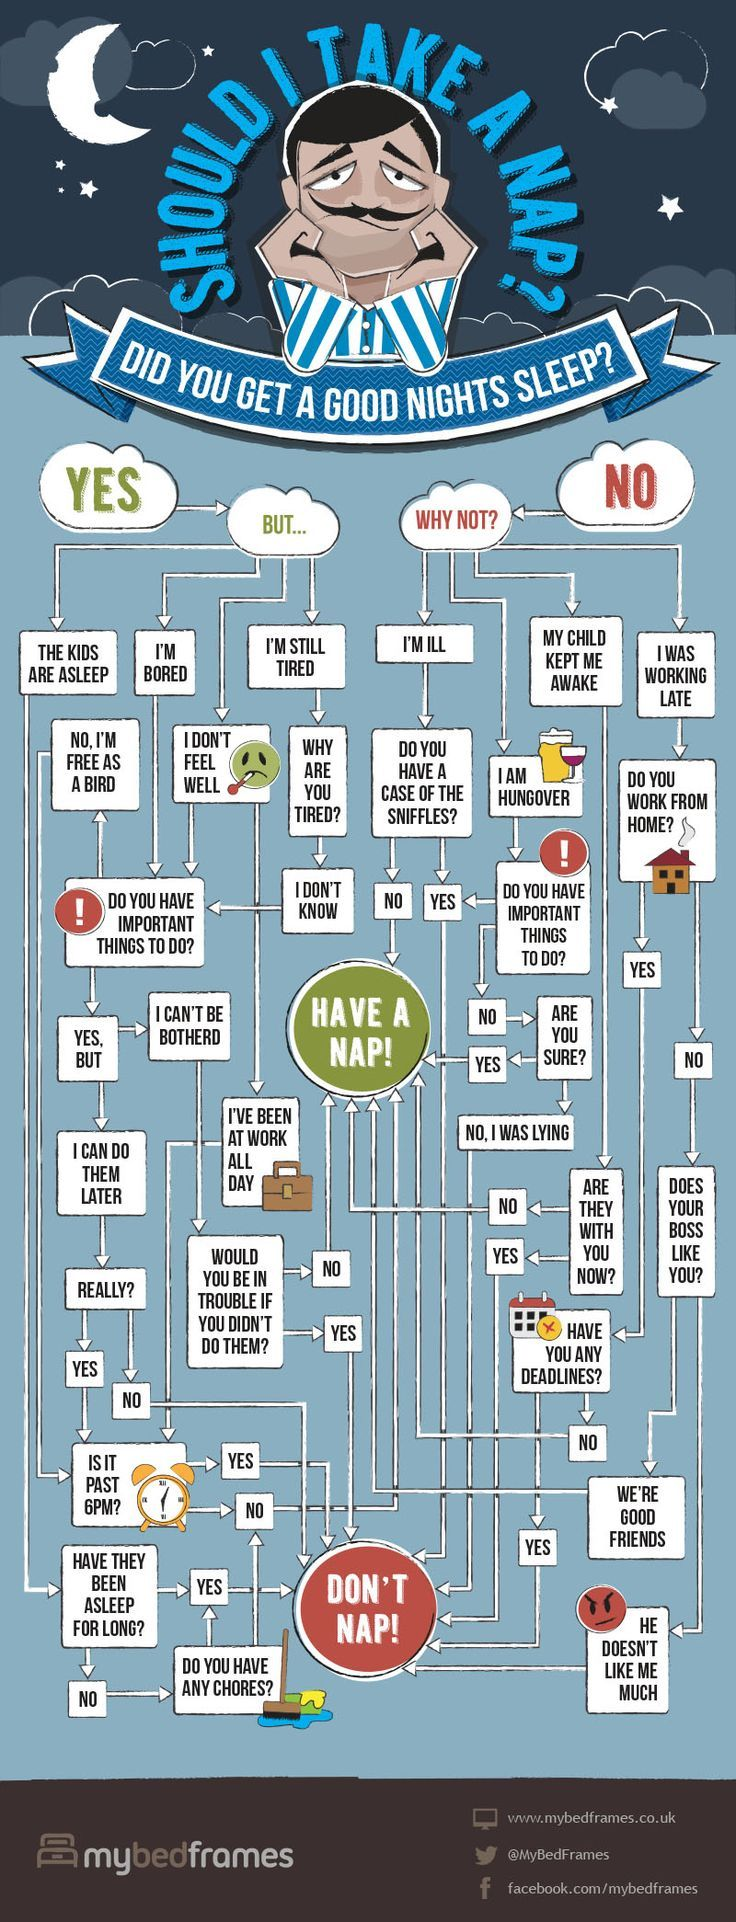 Should I Take a Nap? (Decision Tree) #infographic #sleep #health #lifestyle                                                                                                                                                                                 More